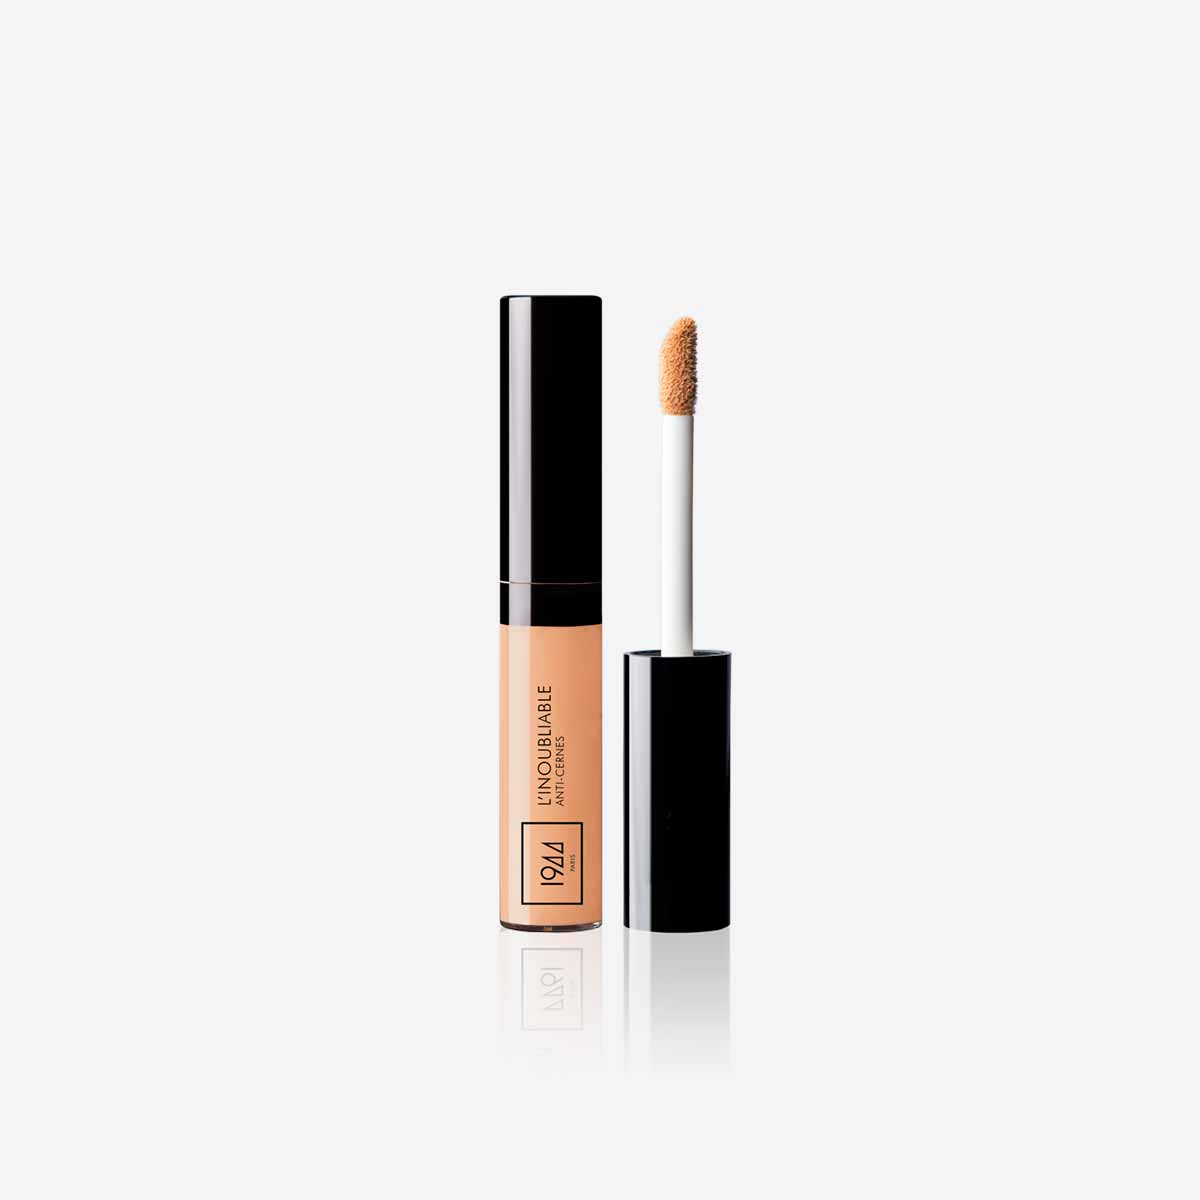 L'Inoubliable 1944 Sandy Beige - Concealer